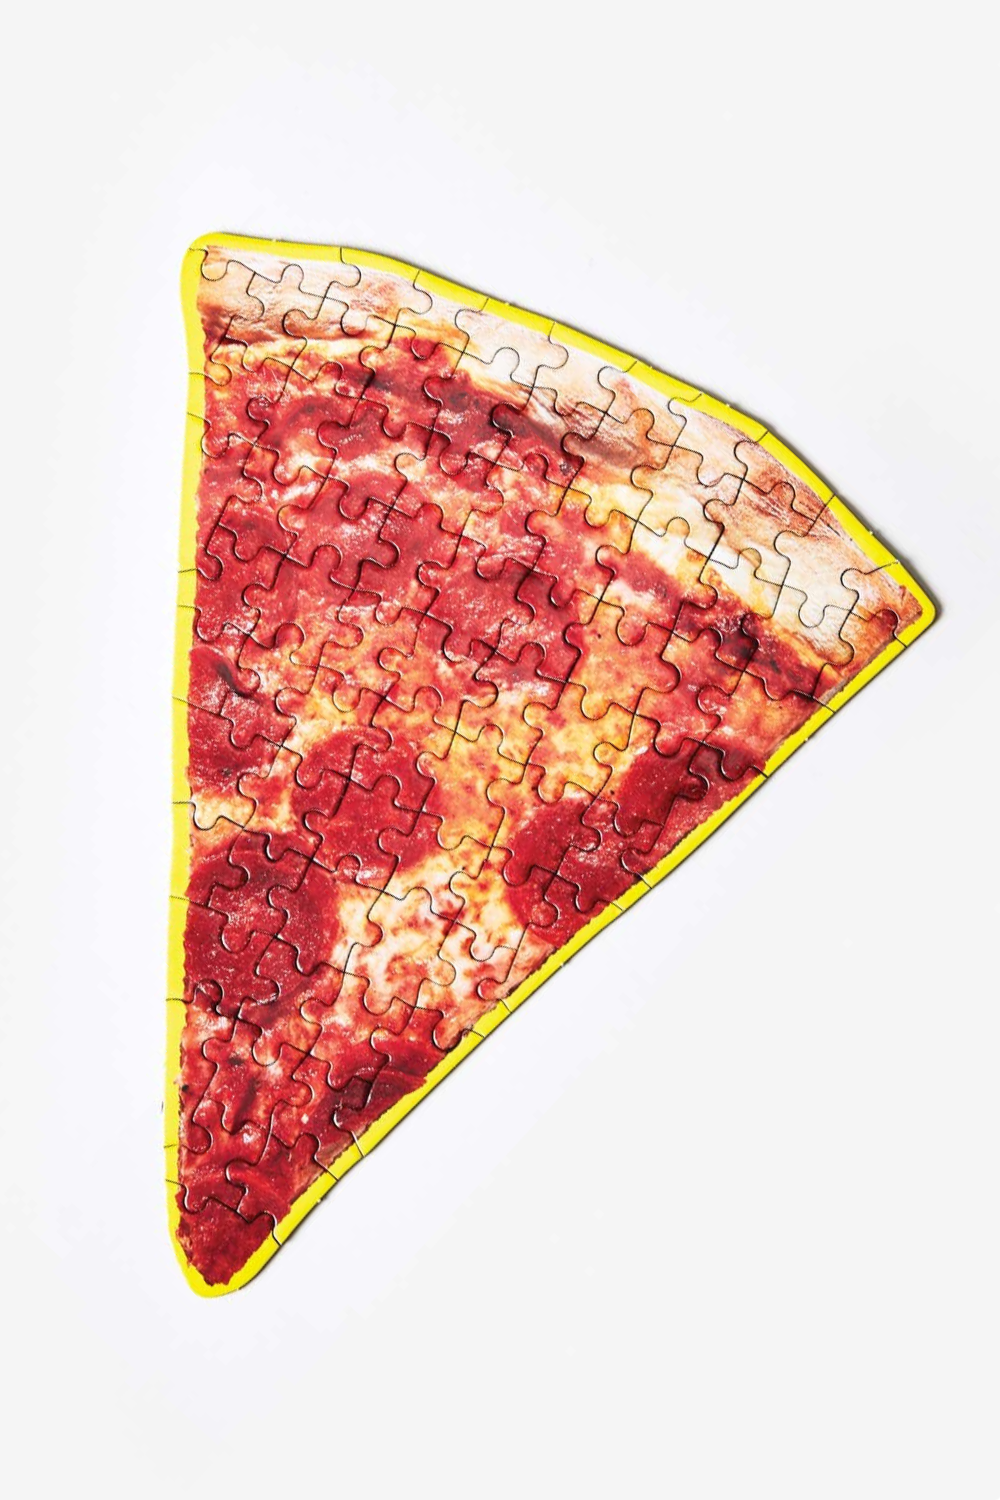 Areaware Little Puzzle Thing: Pizza Slice